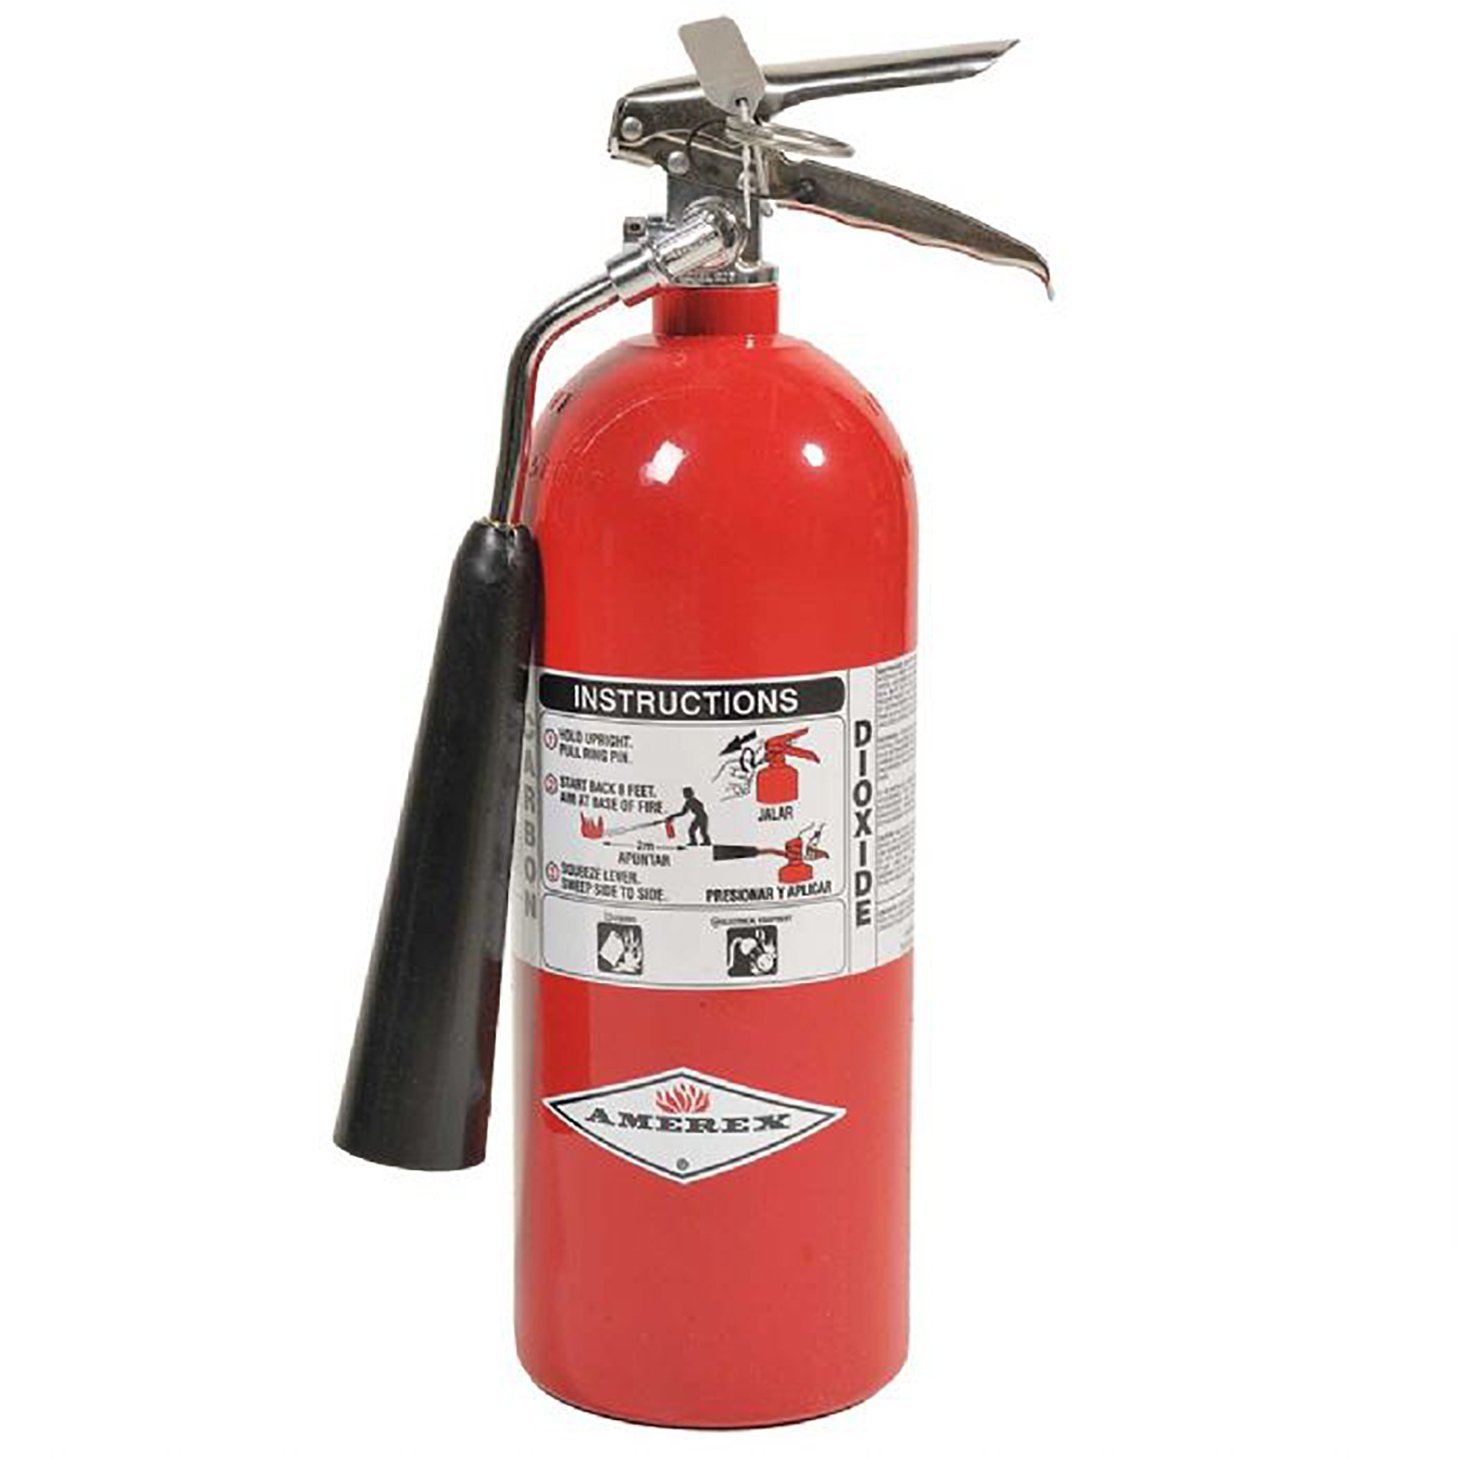 CO2 EXTINGUISHERS` – General Fire and Safety